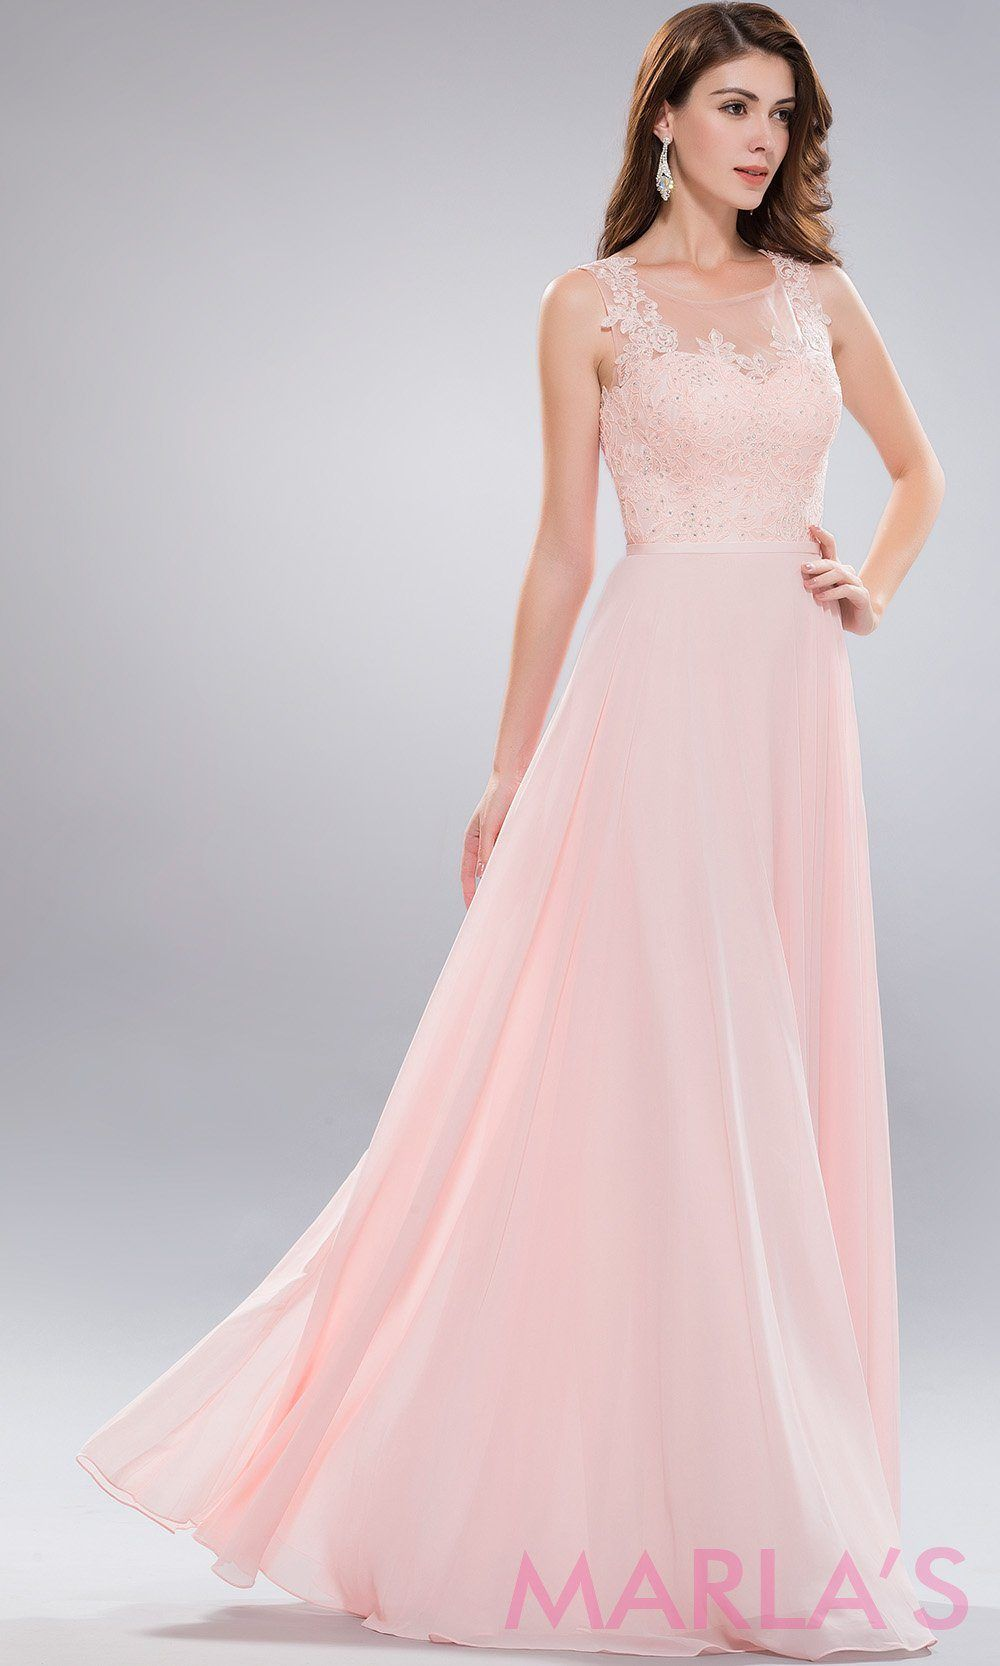 4fb4d080360 Advertisement  Long blush pink high neck dress with lace bodice and flowy  chiffon skirt. This is